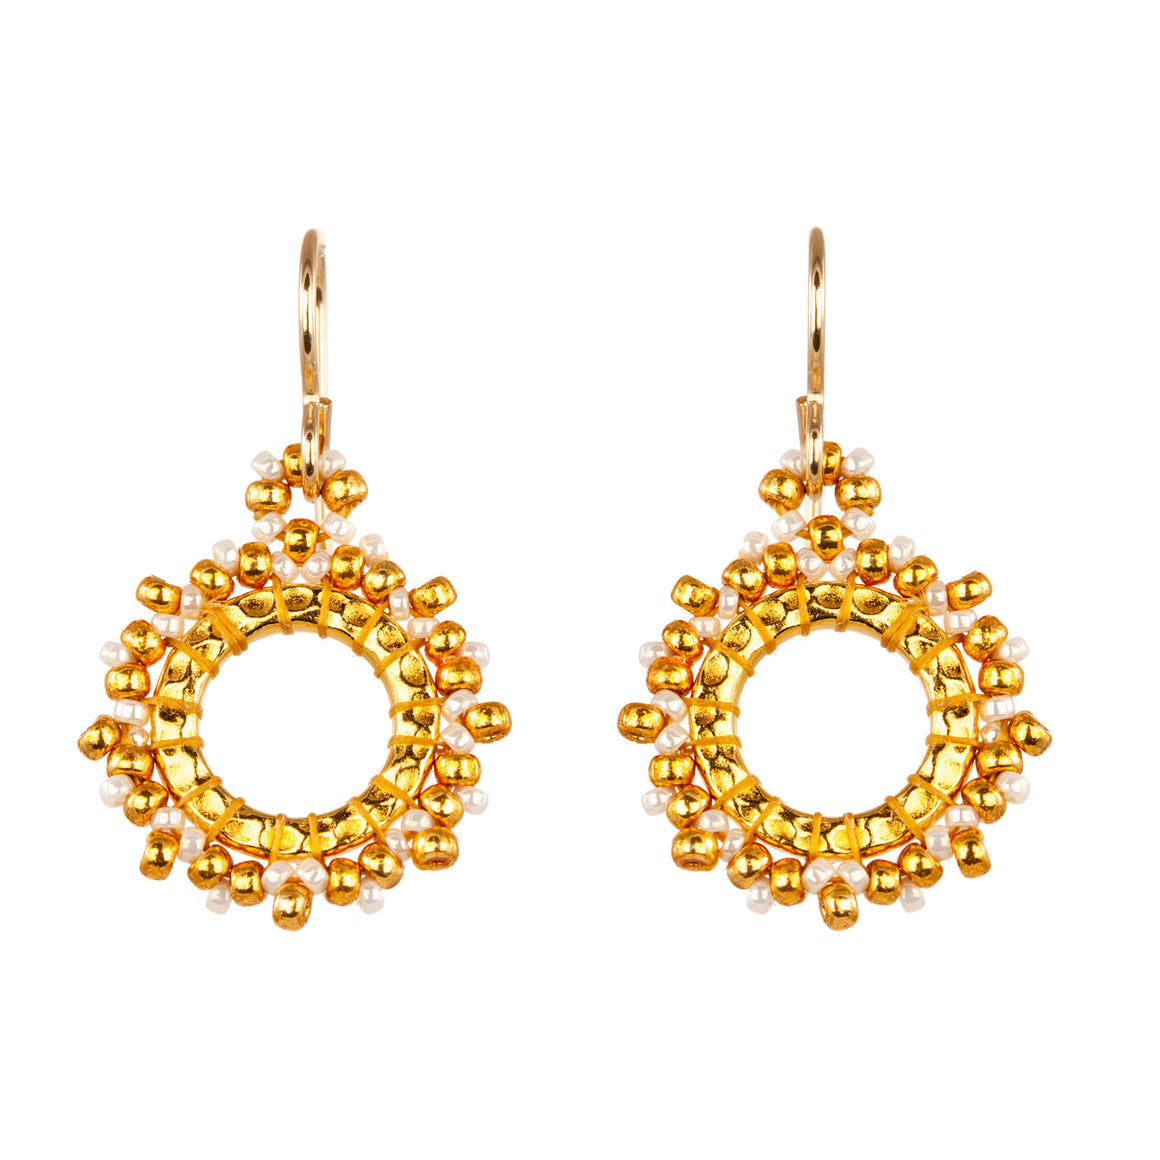 CELEBRATION | EARRINGS